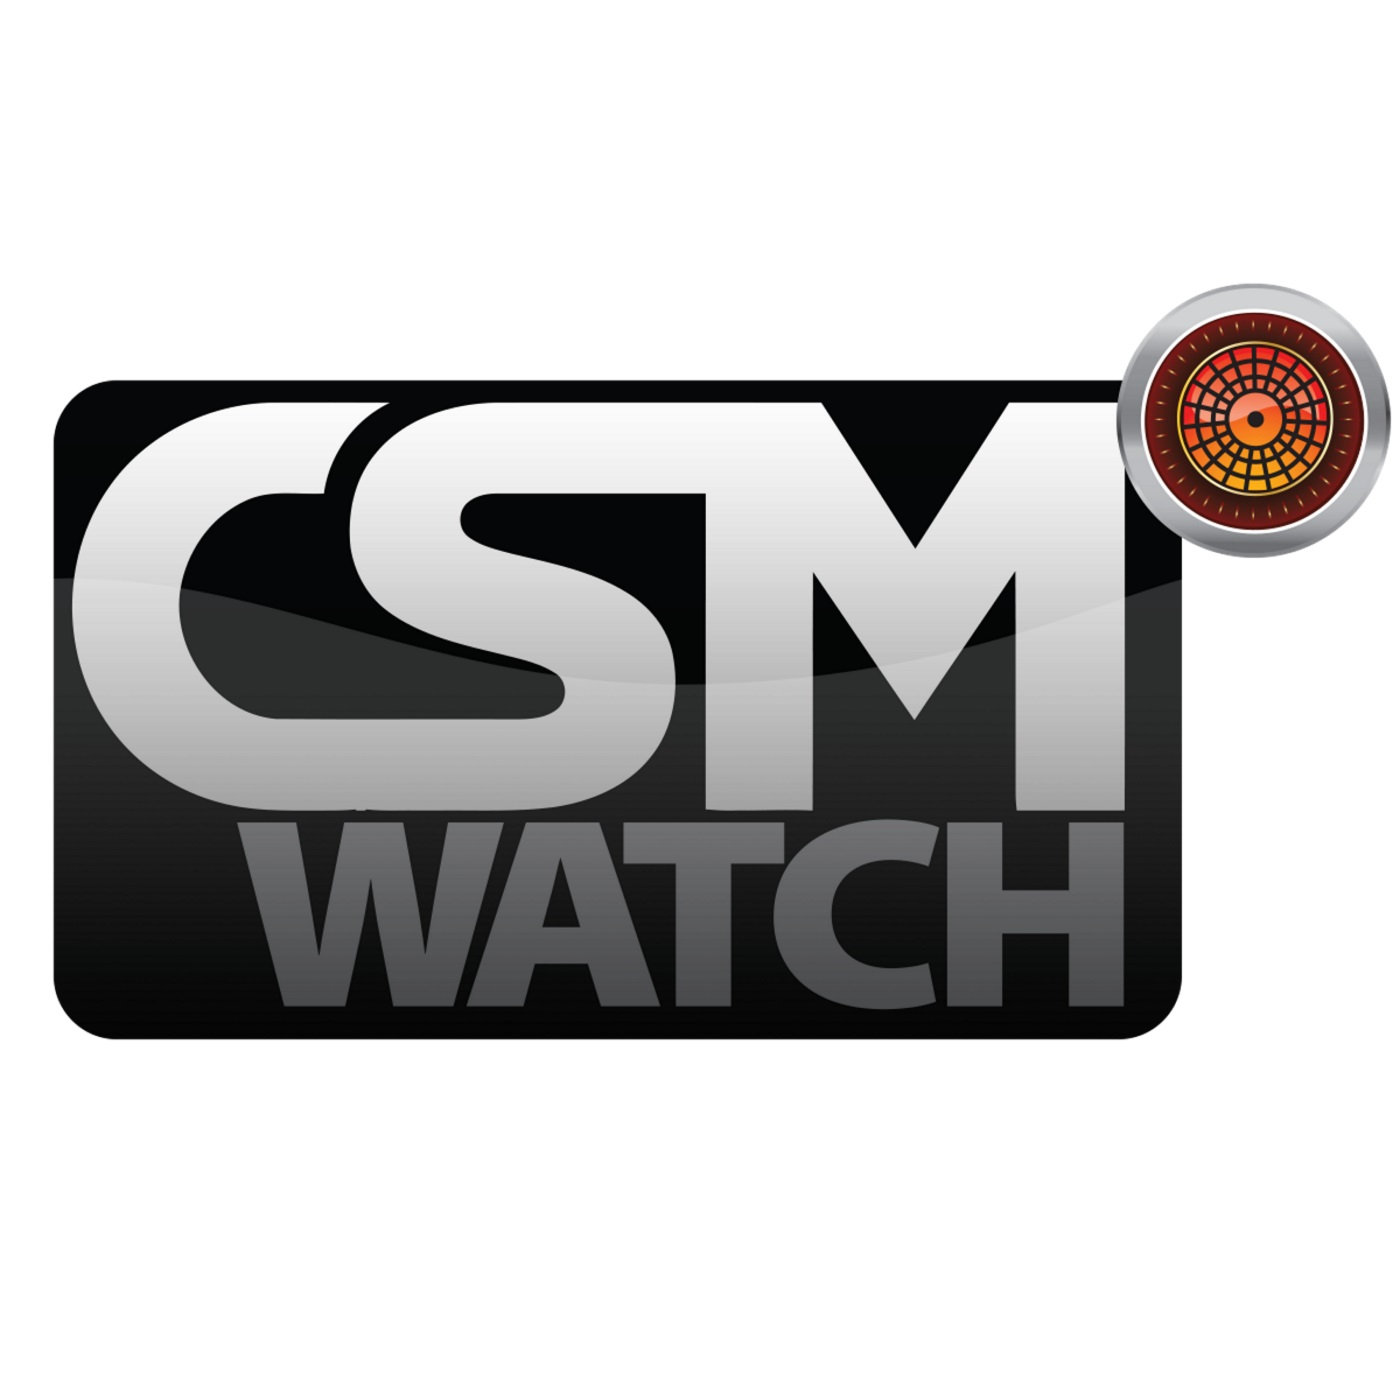 CSM Watch: An Eve Online Podcast